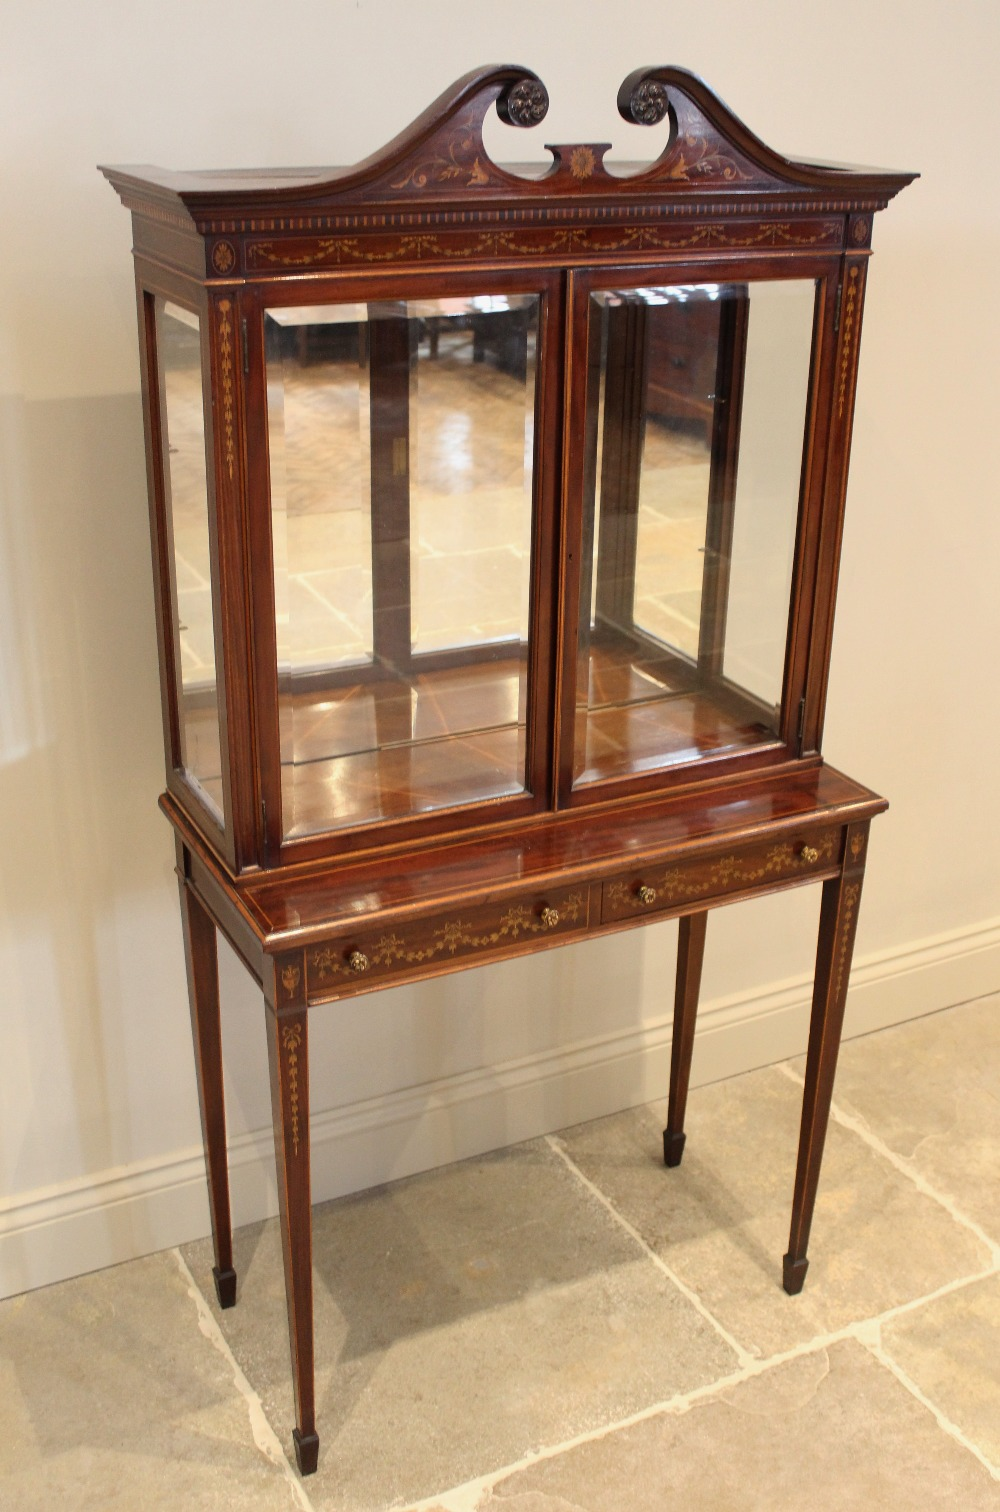 An Edwardian Sheraton revival mahogany display cabinet, by 'Old Time Furnishing Co, Westminster',